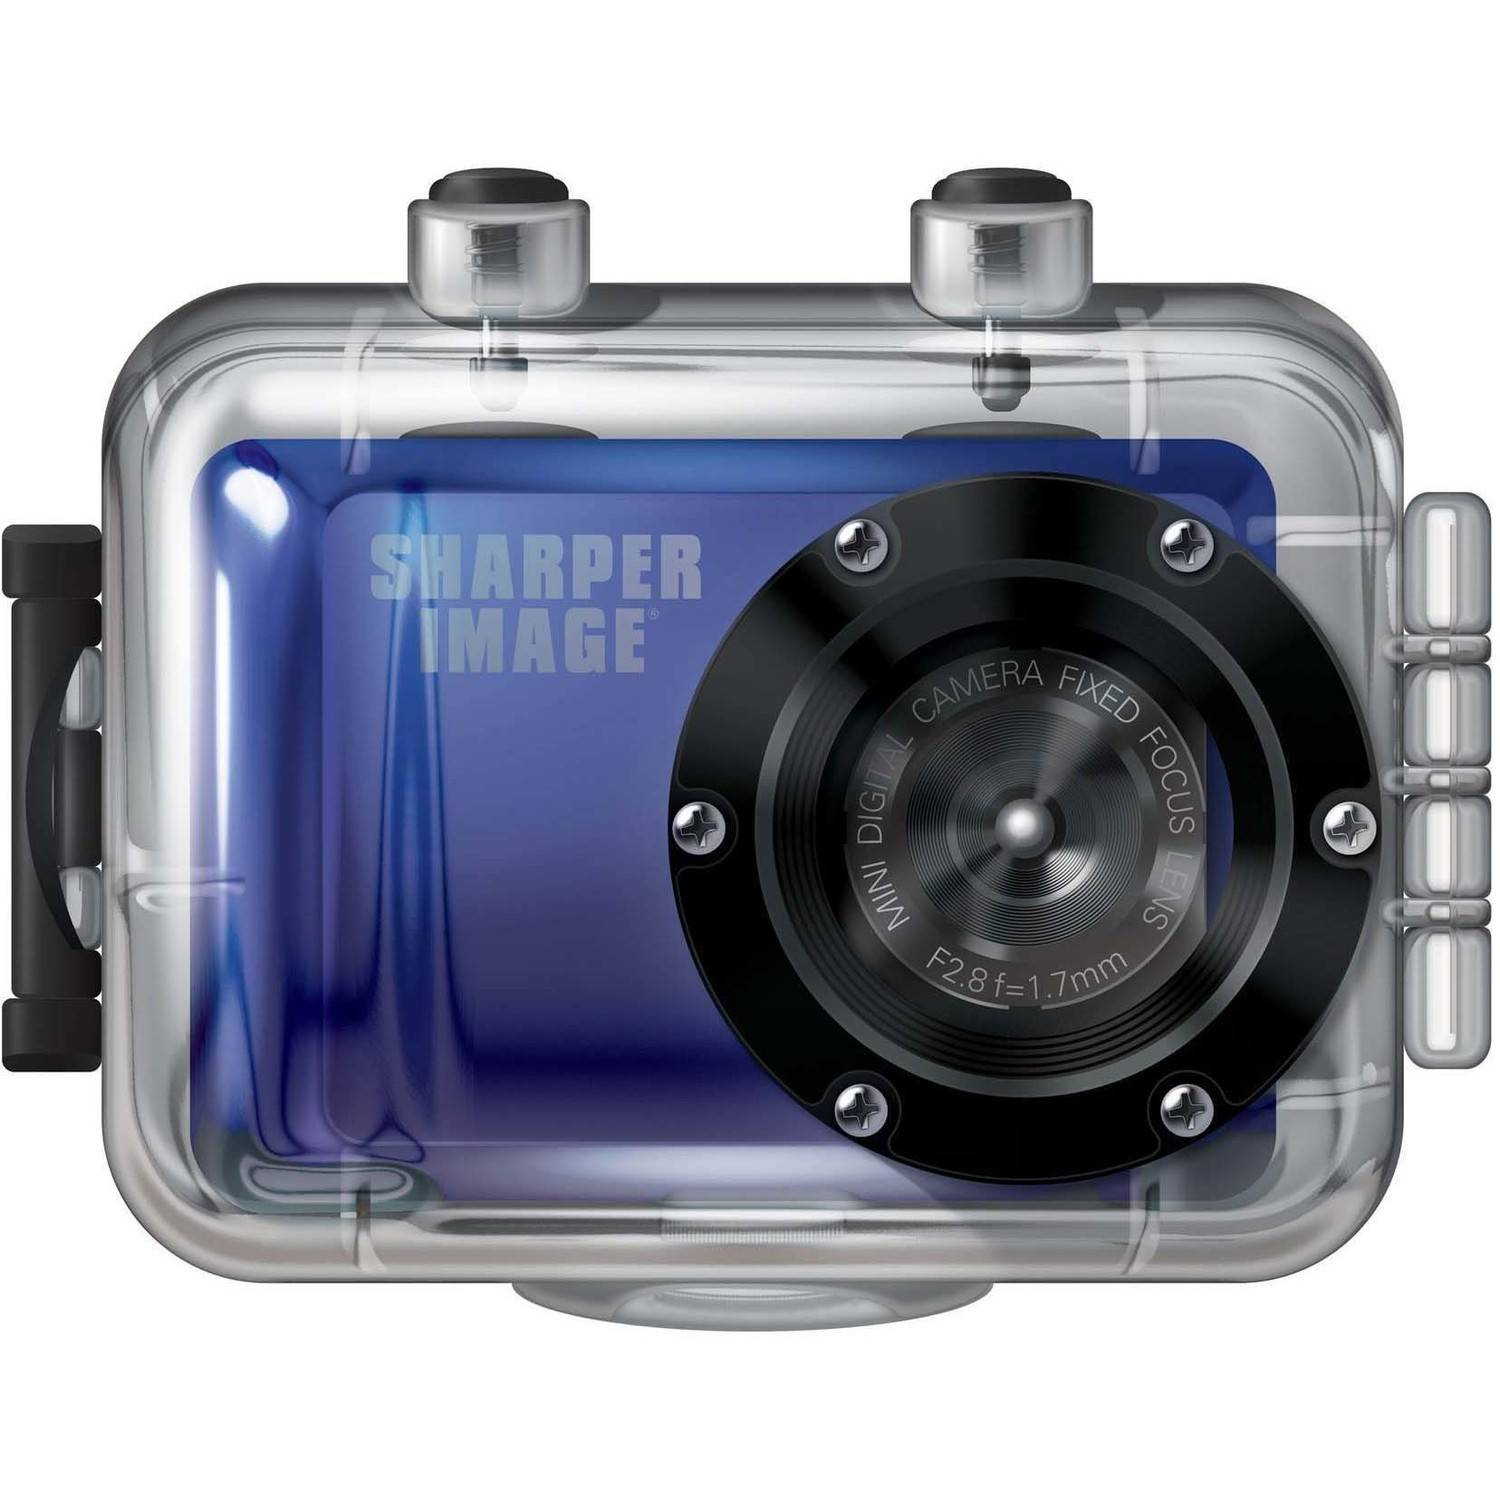 Sharper Image Hd Mini Action Camcorder Waterproof Capabilities